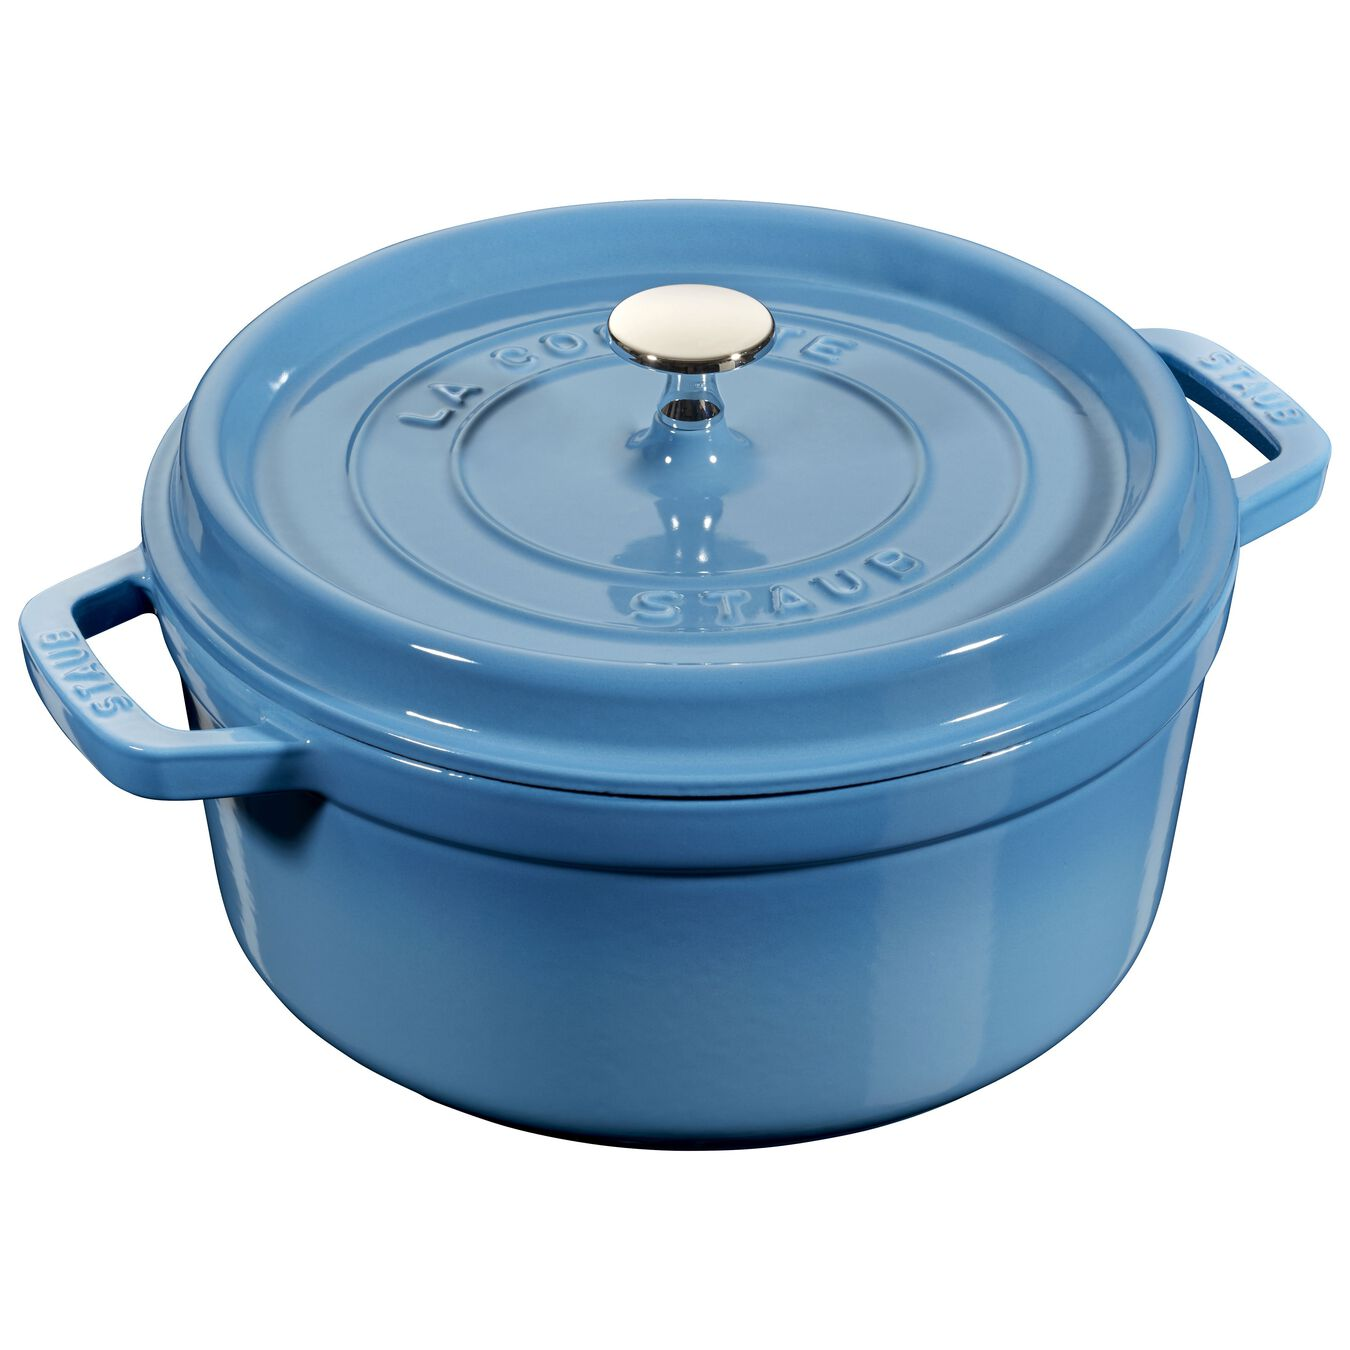 3.75 l Cast iron round Cocotte, Ice-Blue,,large 1